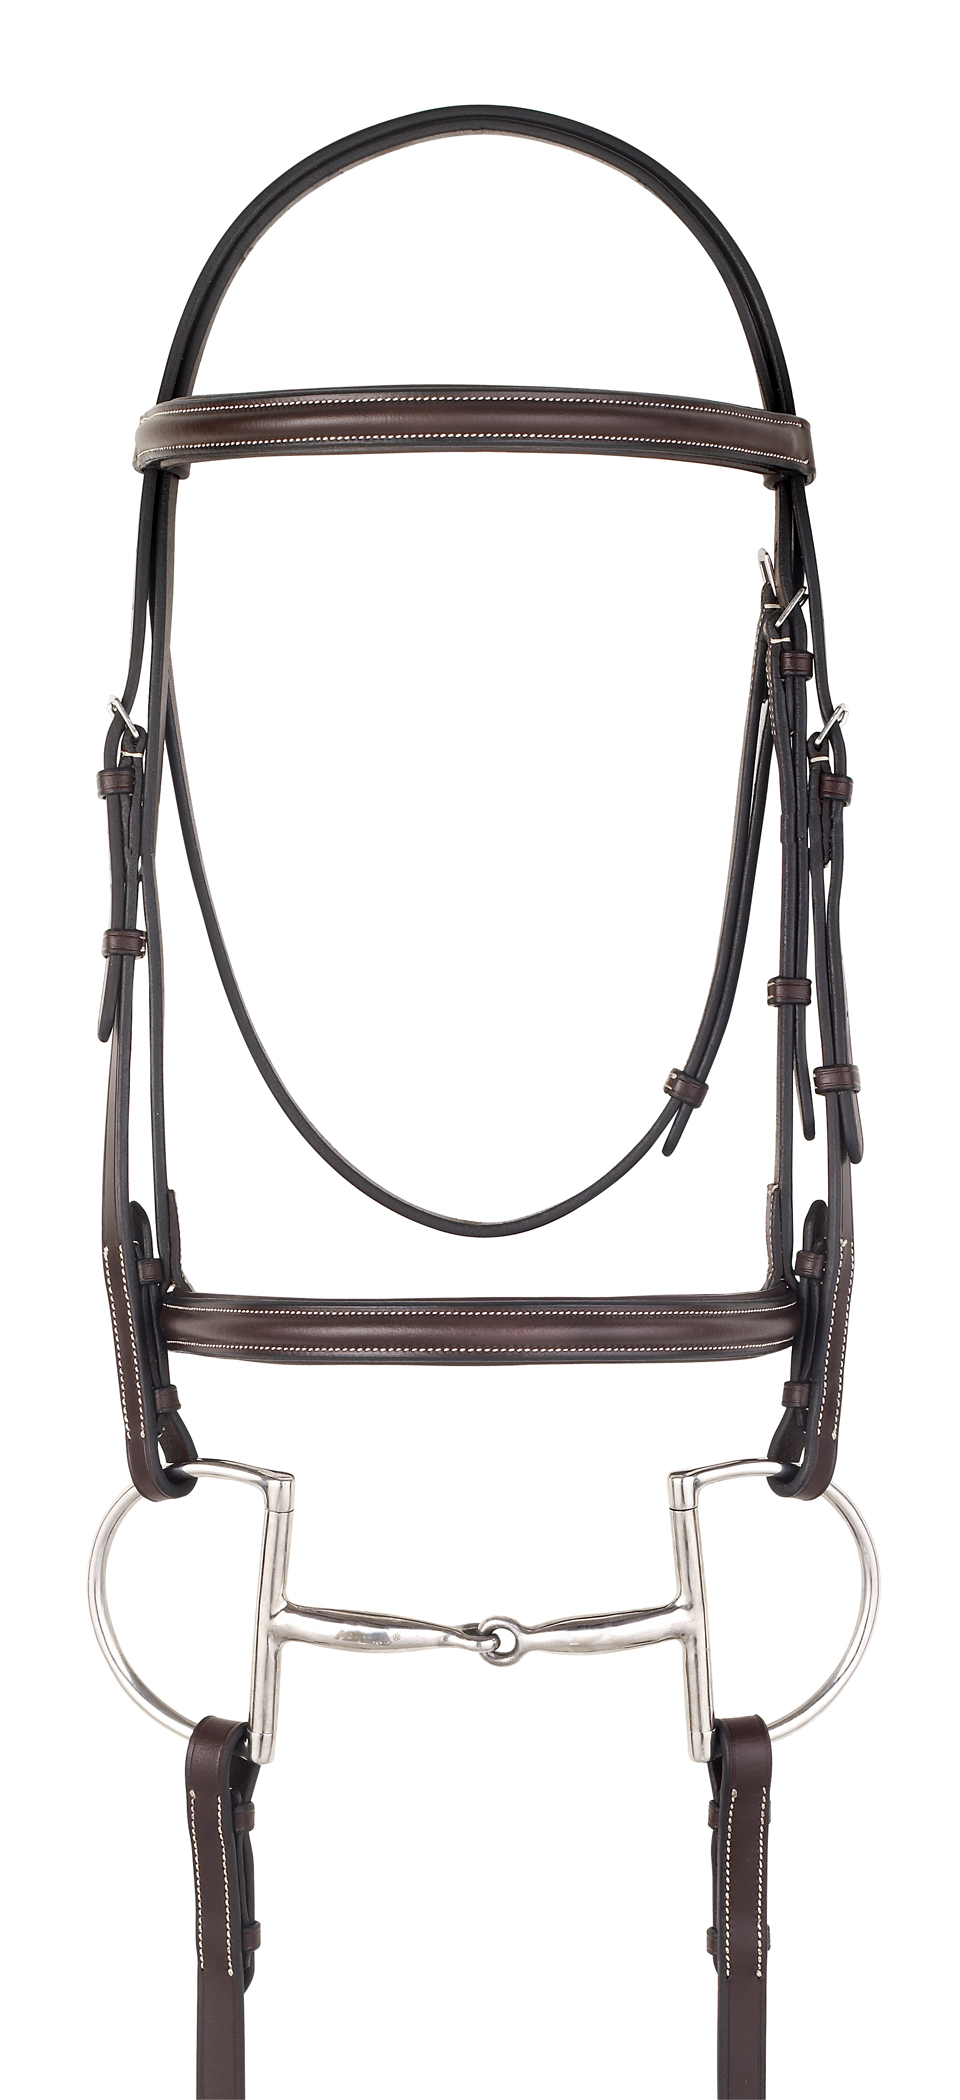 Camelot Gold Plain Raised Padded Bridle with Flash